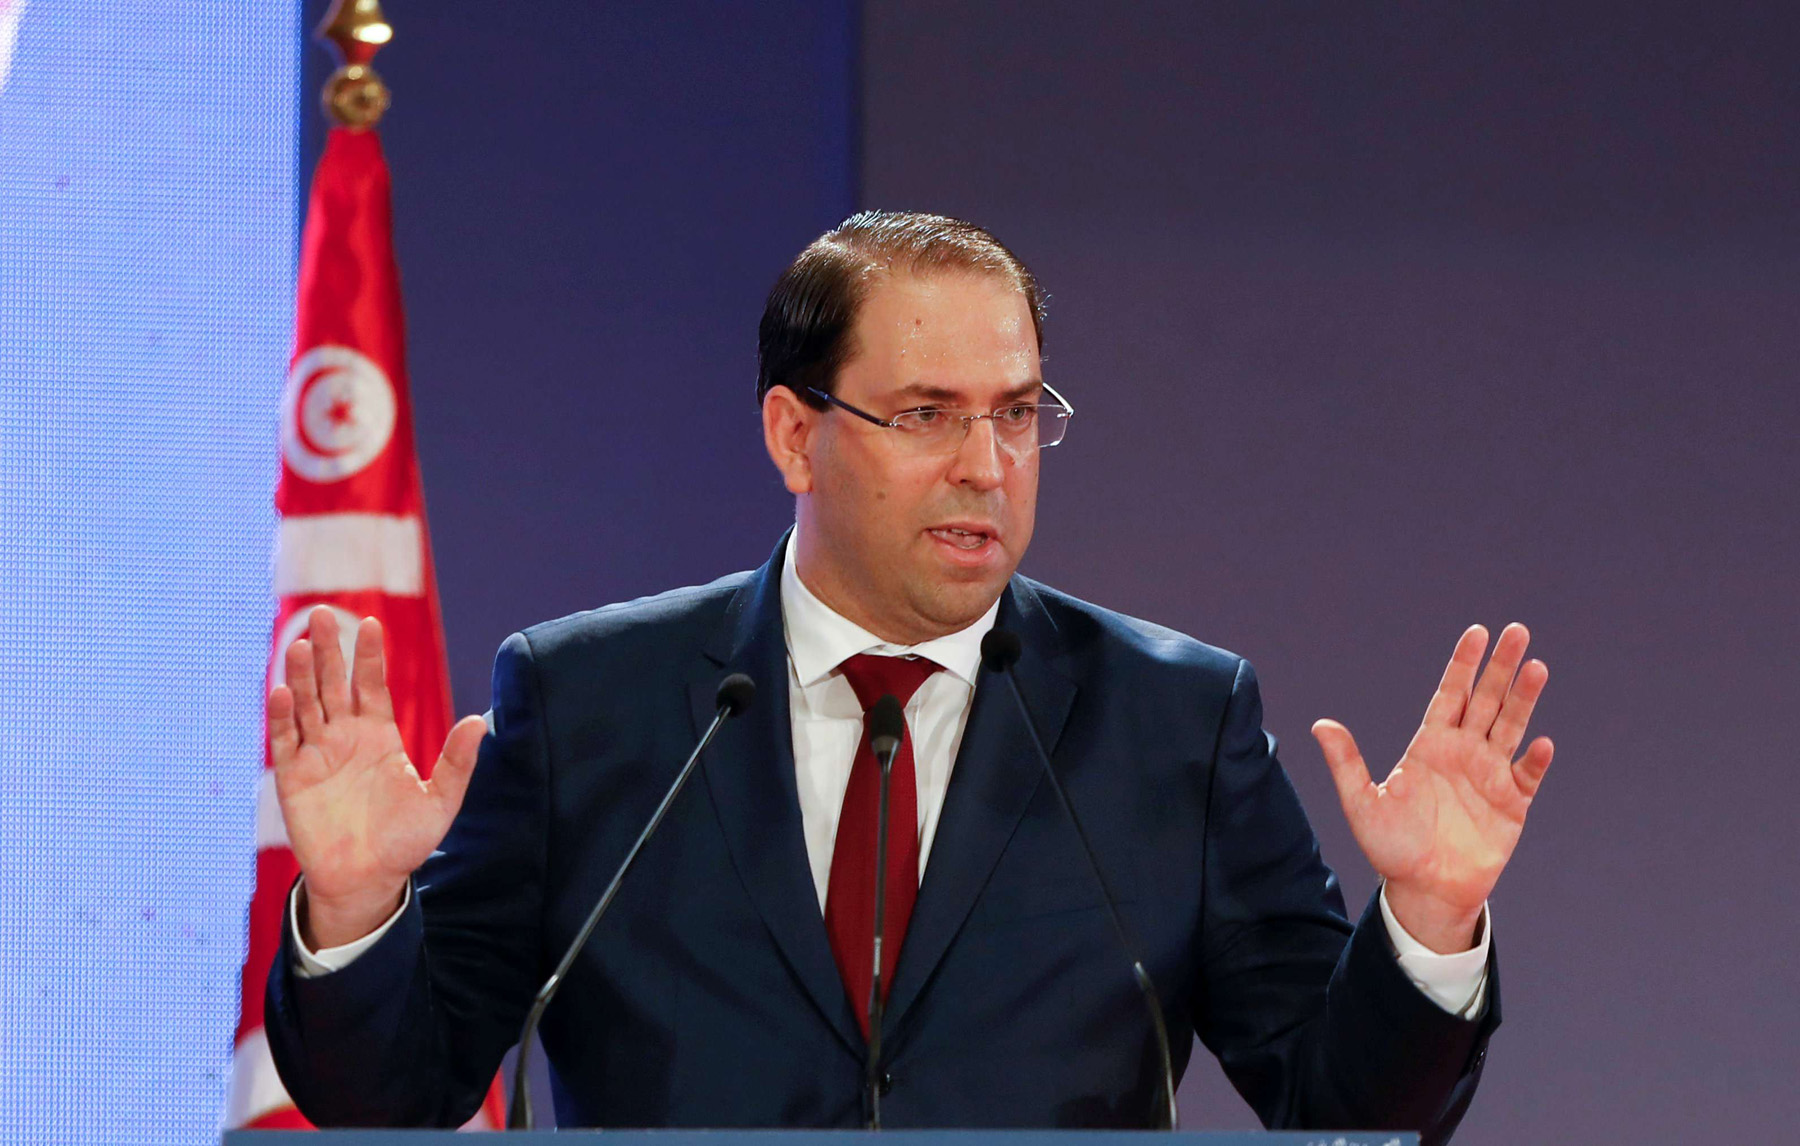 Tunisian Prime Minister Youssef Chahed gestures as he speaks during a national conference over 2019 budget in Tunis, Tunisia, September 14, 2018. (Reuters)